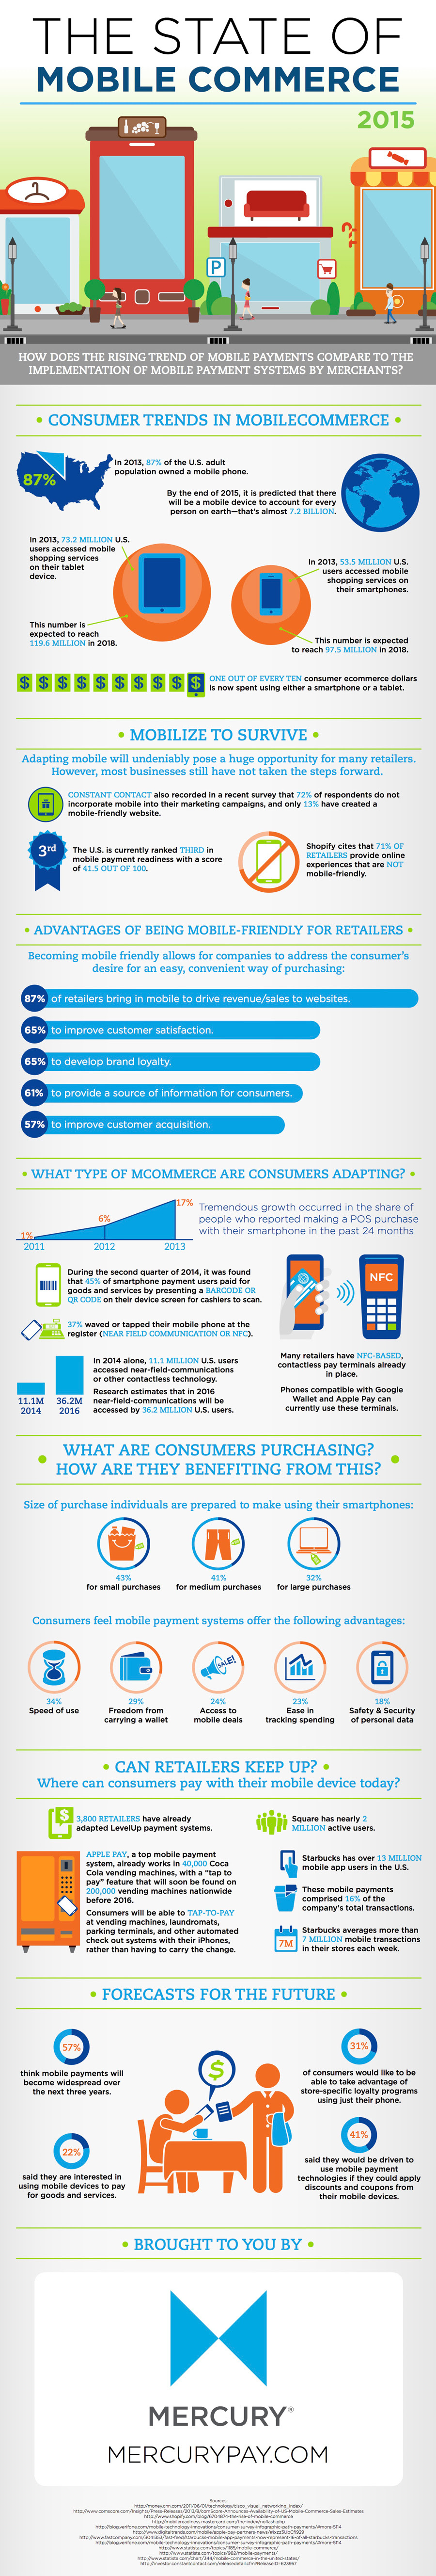 Infographic - The State of Mobile Commerce